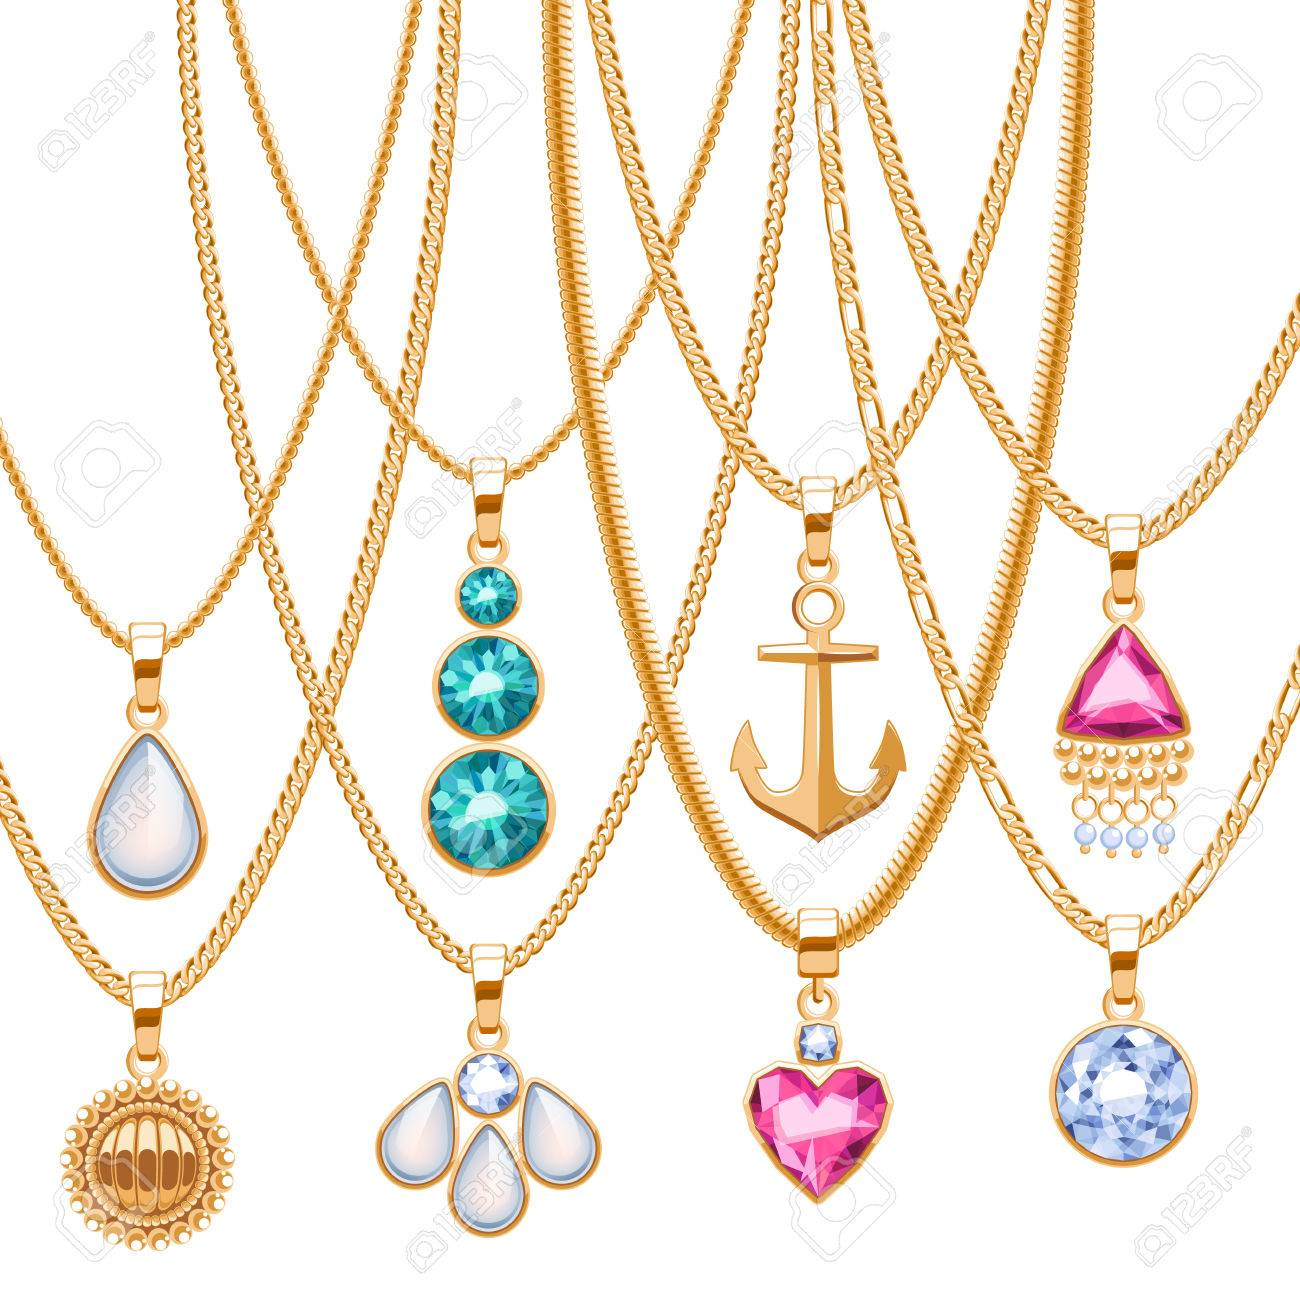 Set of golden chains with different pendants precious necklaces set of golden chains with different pendants precious necklaces golden pendants with gemstones pearls aloadofball Gallery